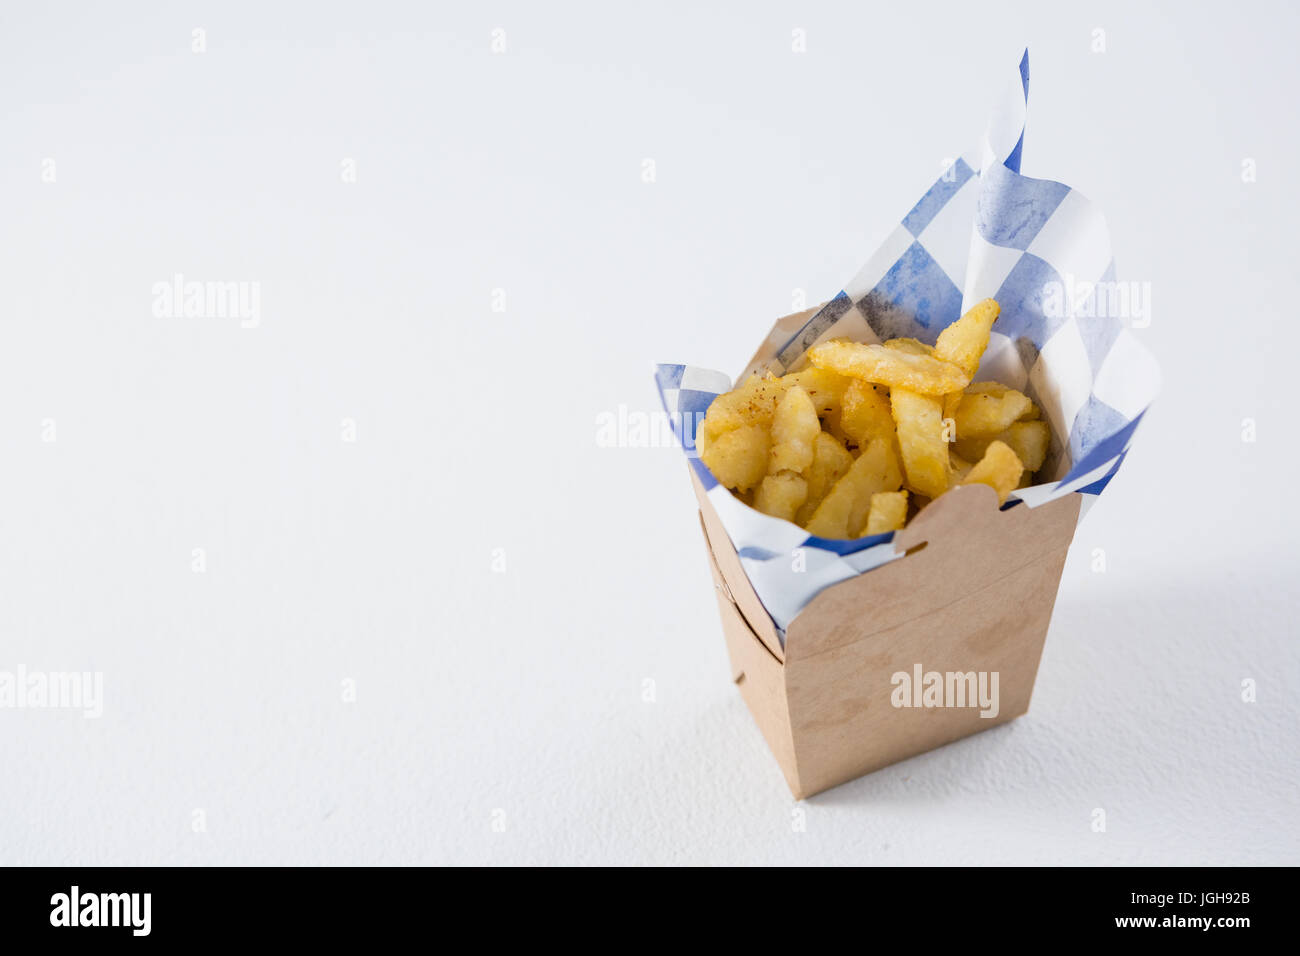 High angel view of French fries in carton box on table - Stock Image